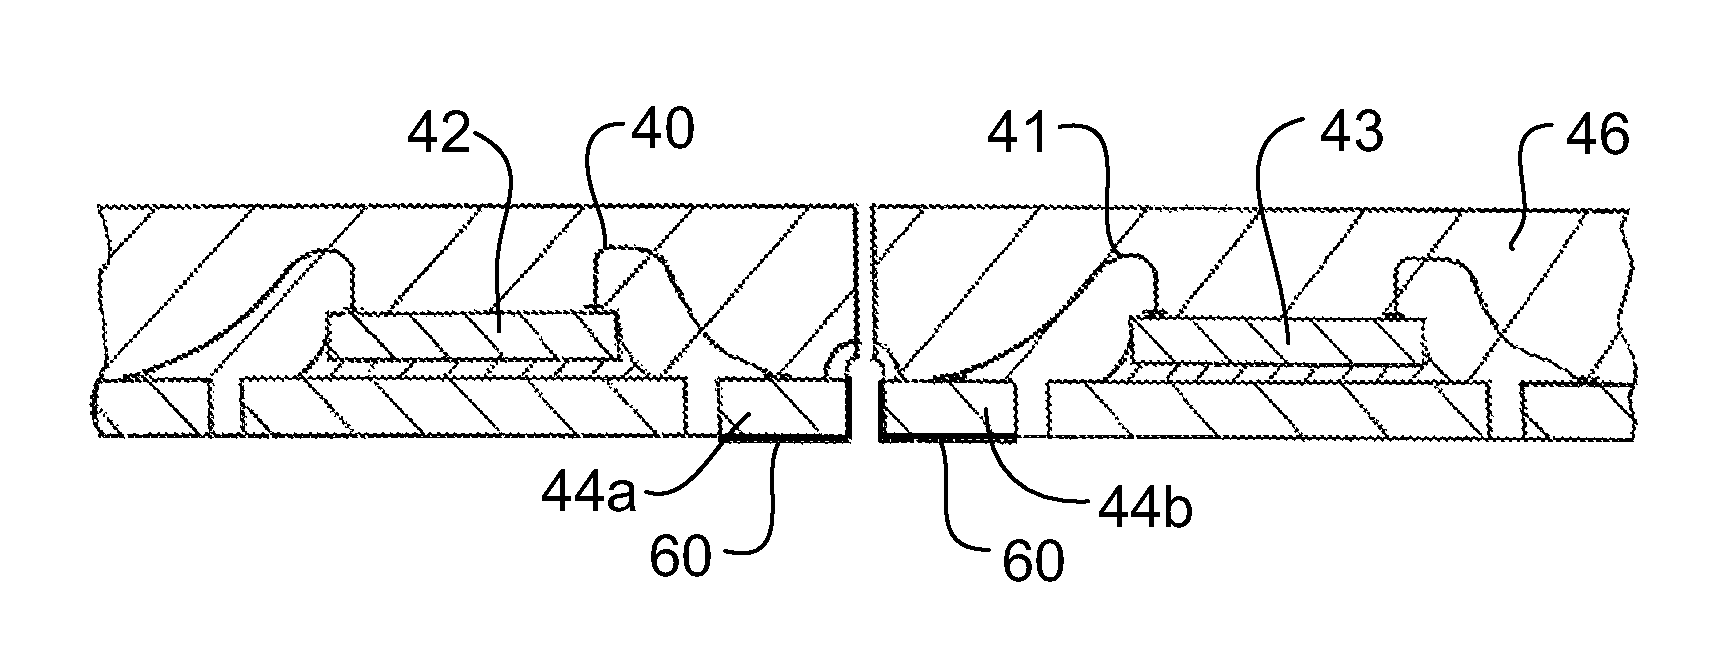 Analytics for US Patent No. 8685795, Flank wettable semiconductor device